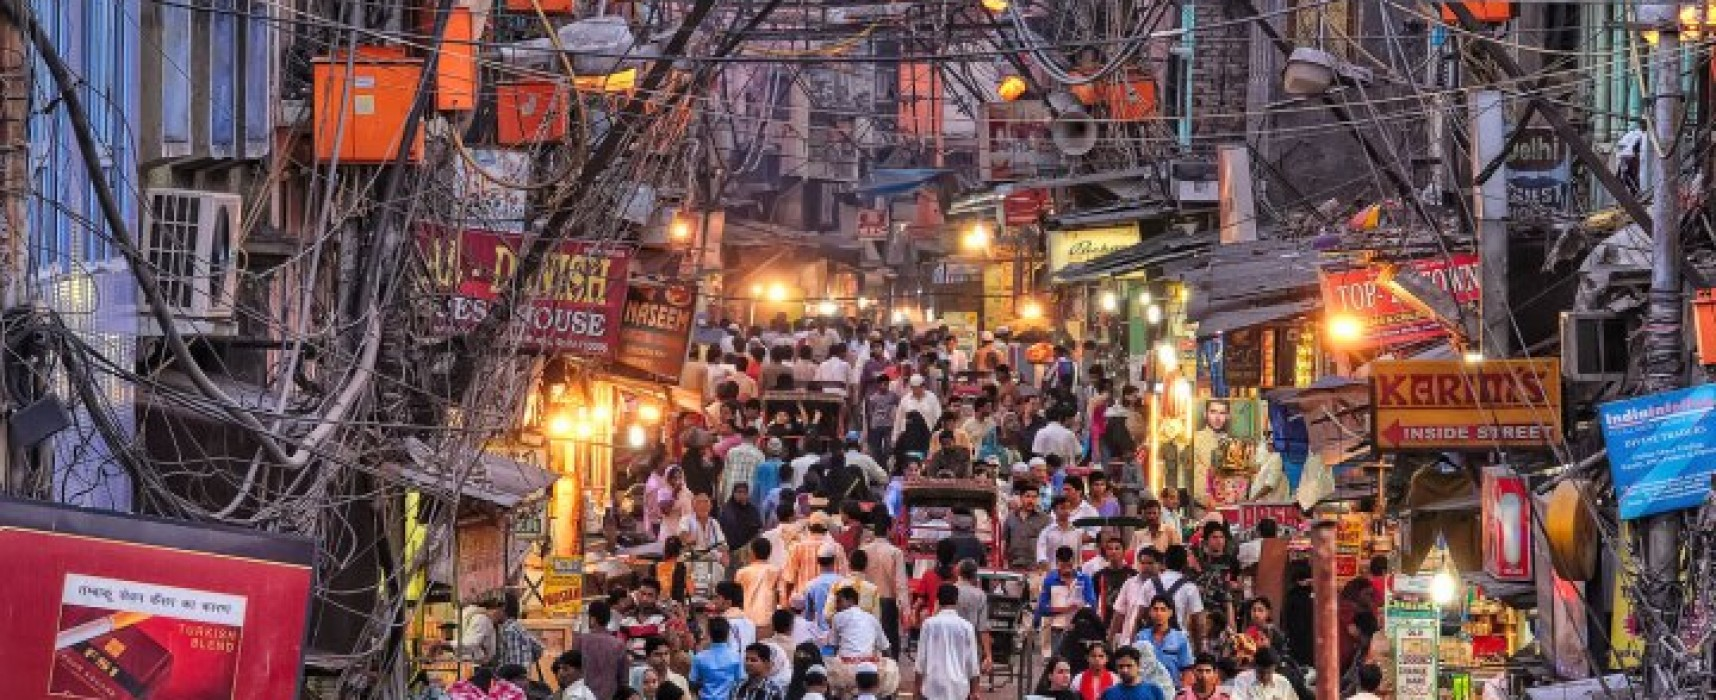 Chandni Chowk – The Streets of Chaos, Hhistory and Wonder